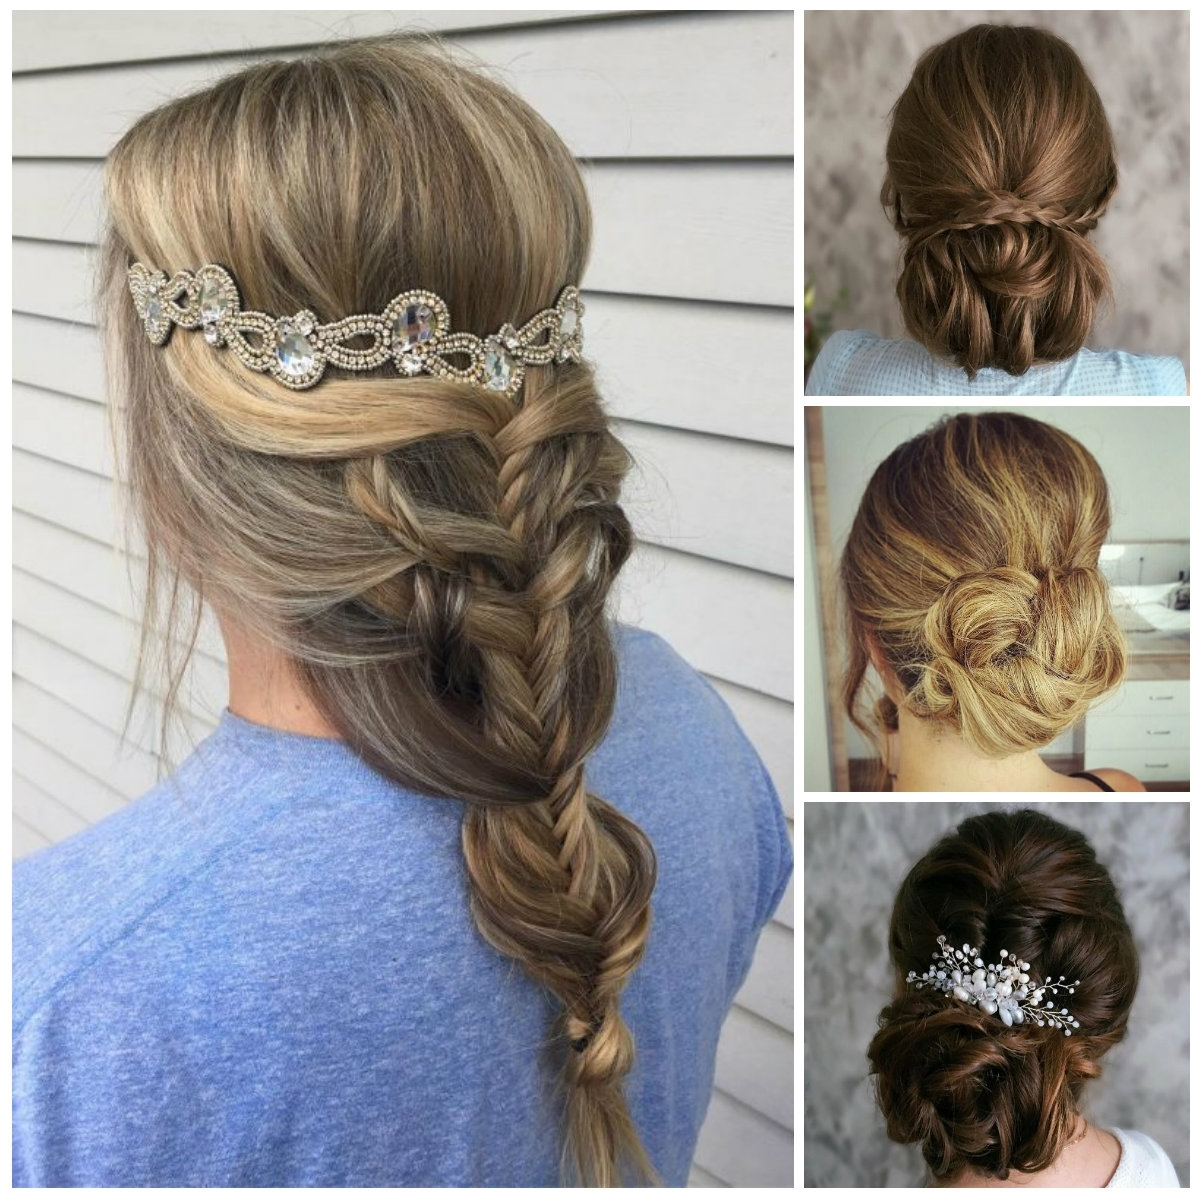 Braided Hairstyles | New Haircuts To Try For 2018, Hairstyles For Pertaining To Long Hair Updo Accessories (View 15 of 15)